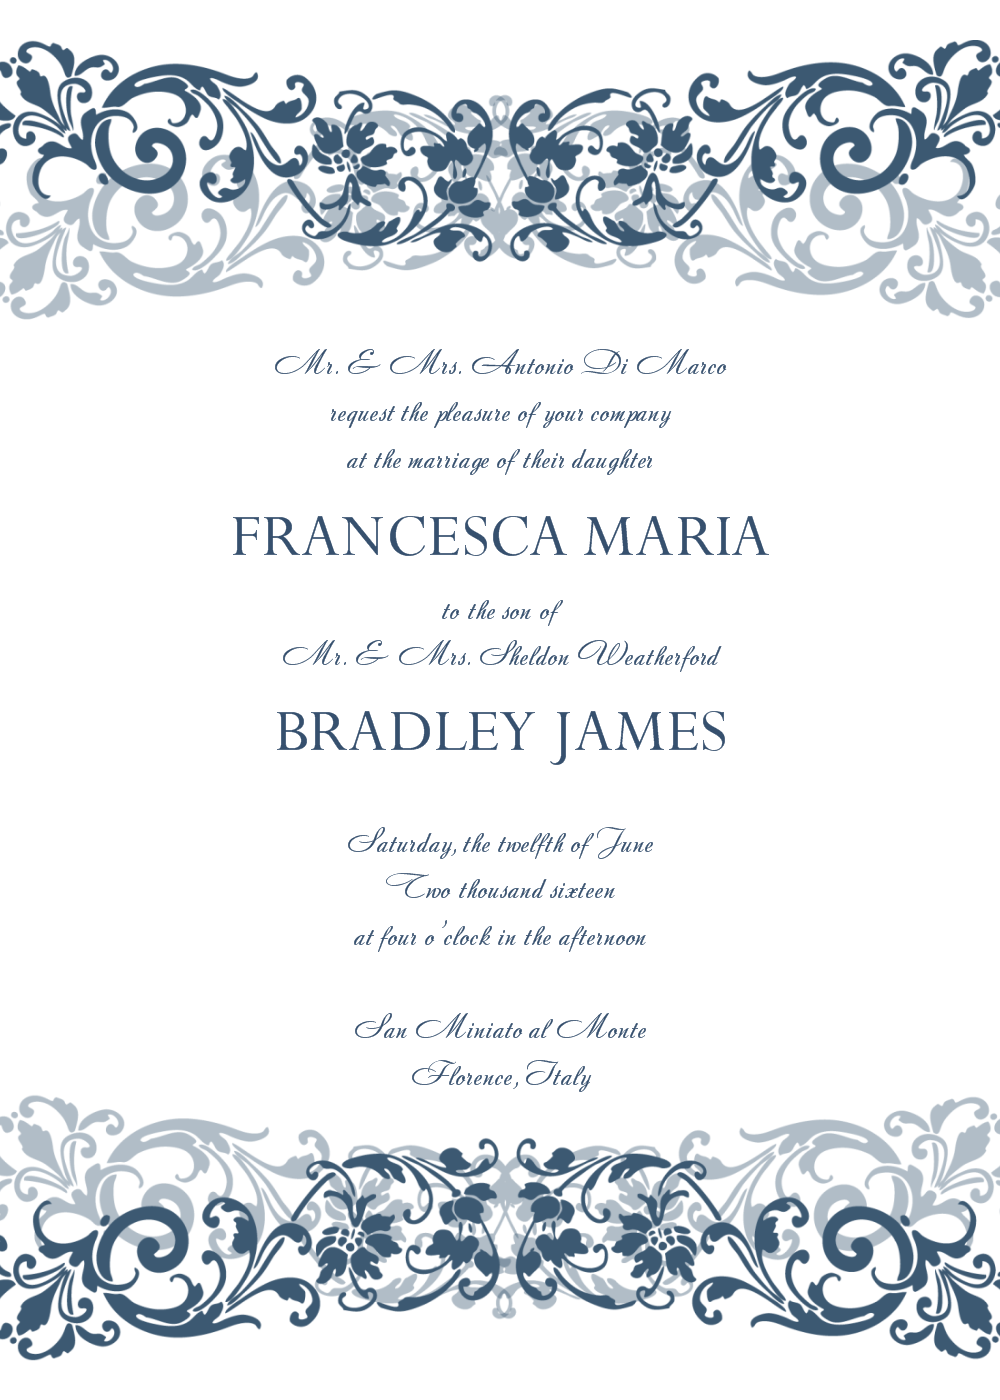 30+ Free Wedding Invitations Templates | Free wedding invitation ...